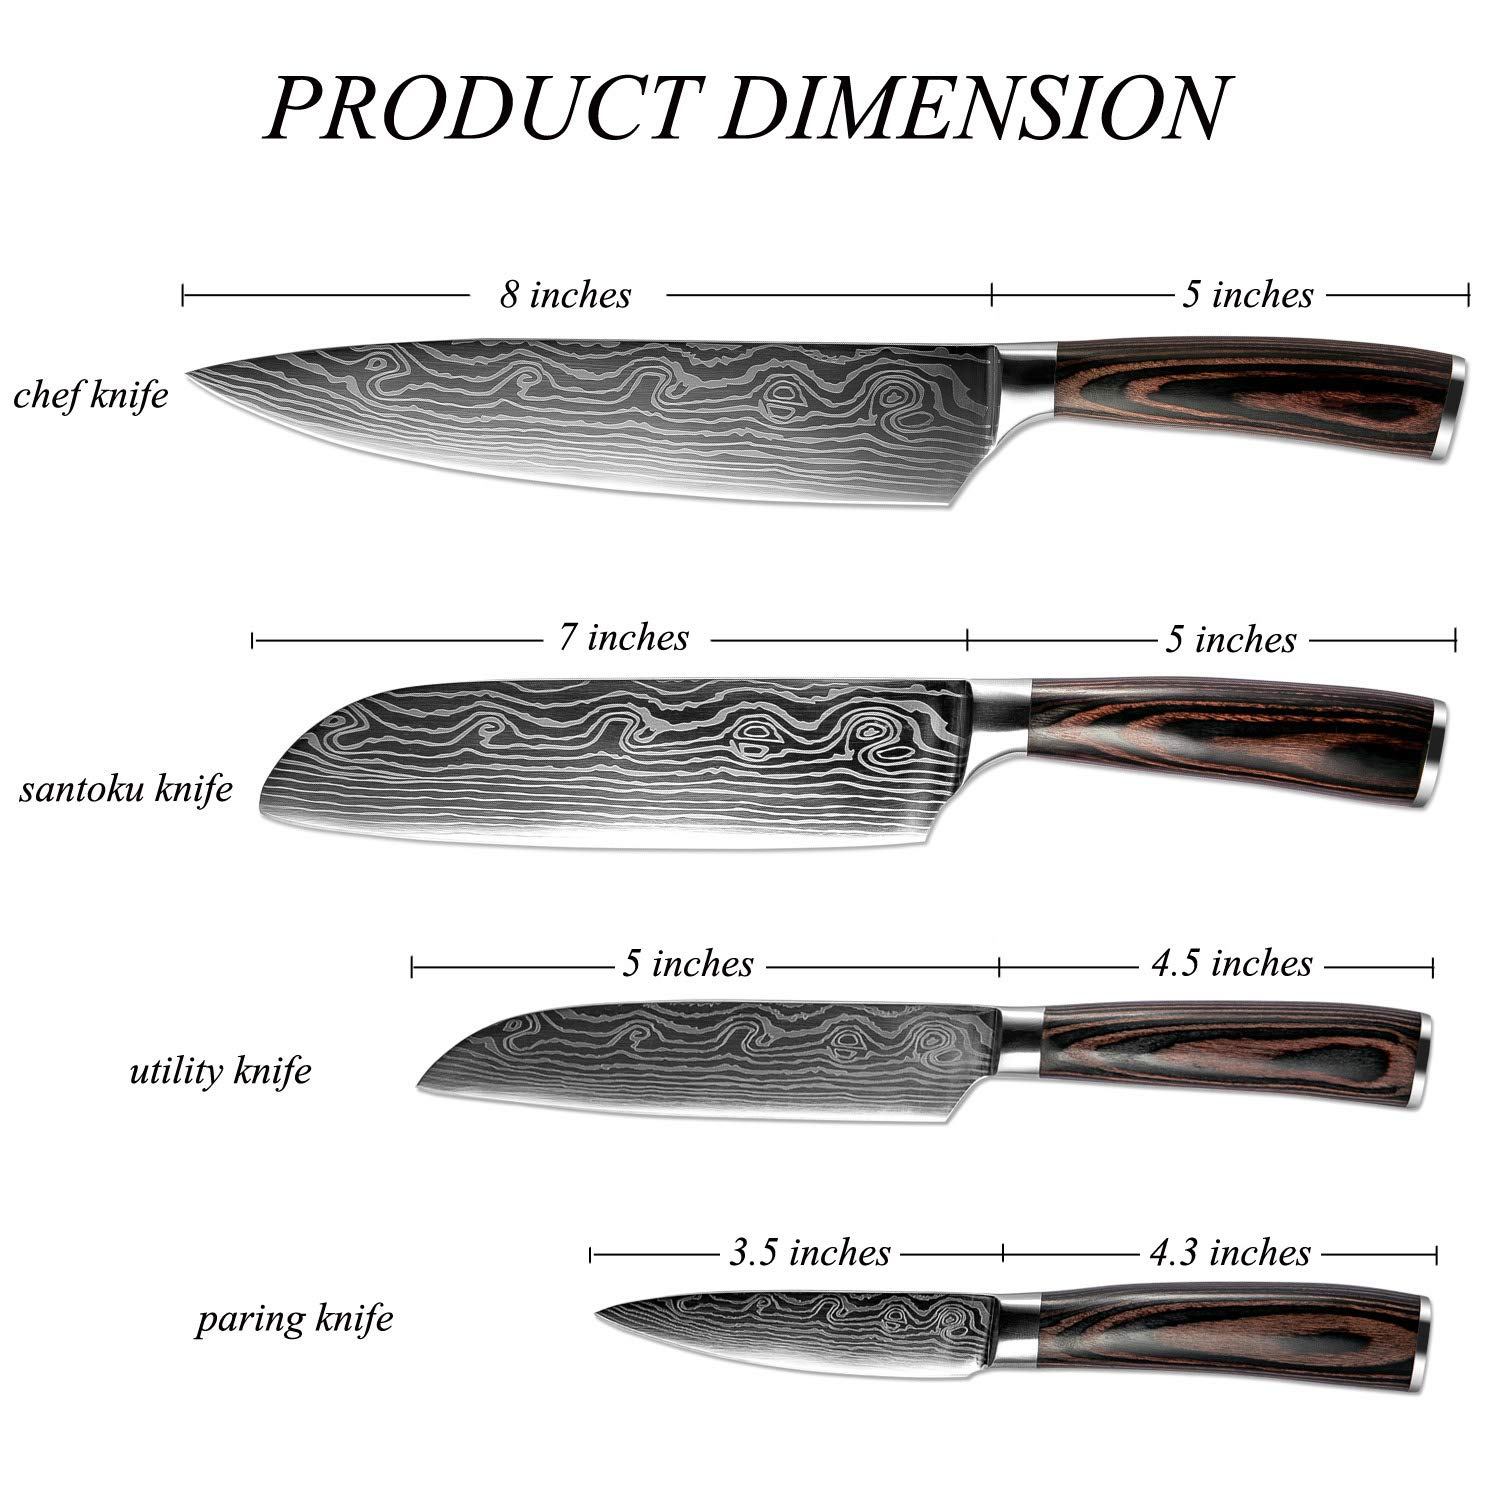 XITUO Kitchen Knives Set, 4pcs High Carbon Stainless Steel Chef Knife Set - Chef Knife, Santoku Knife, Utility Knife, Paring Knife with Razor Sharp Blade and Ergonomic Handle by XITUO (Image #2)